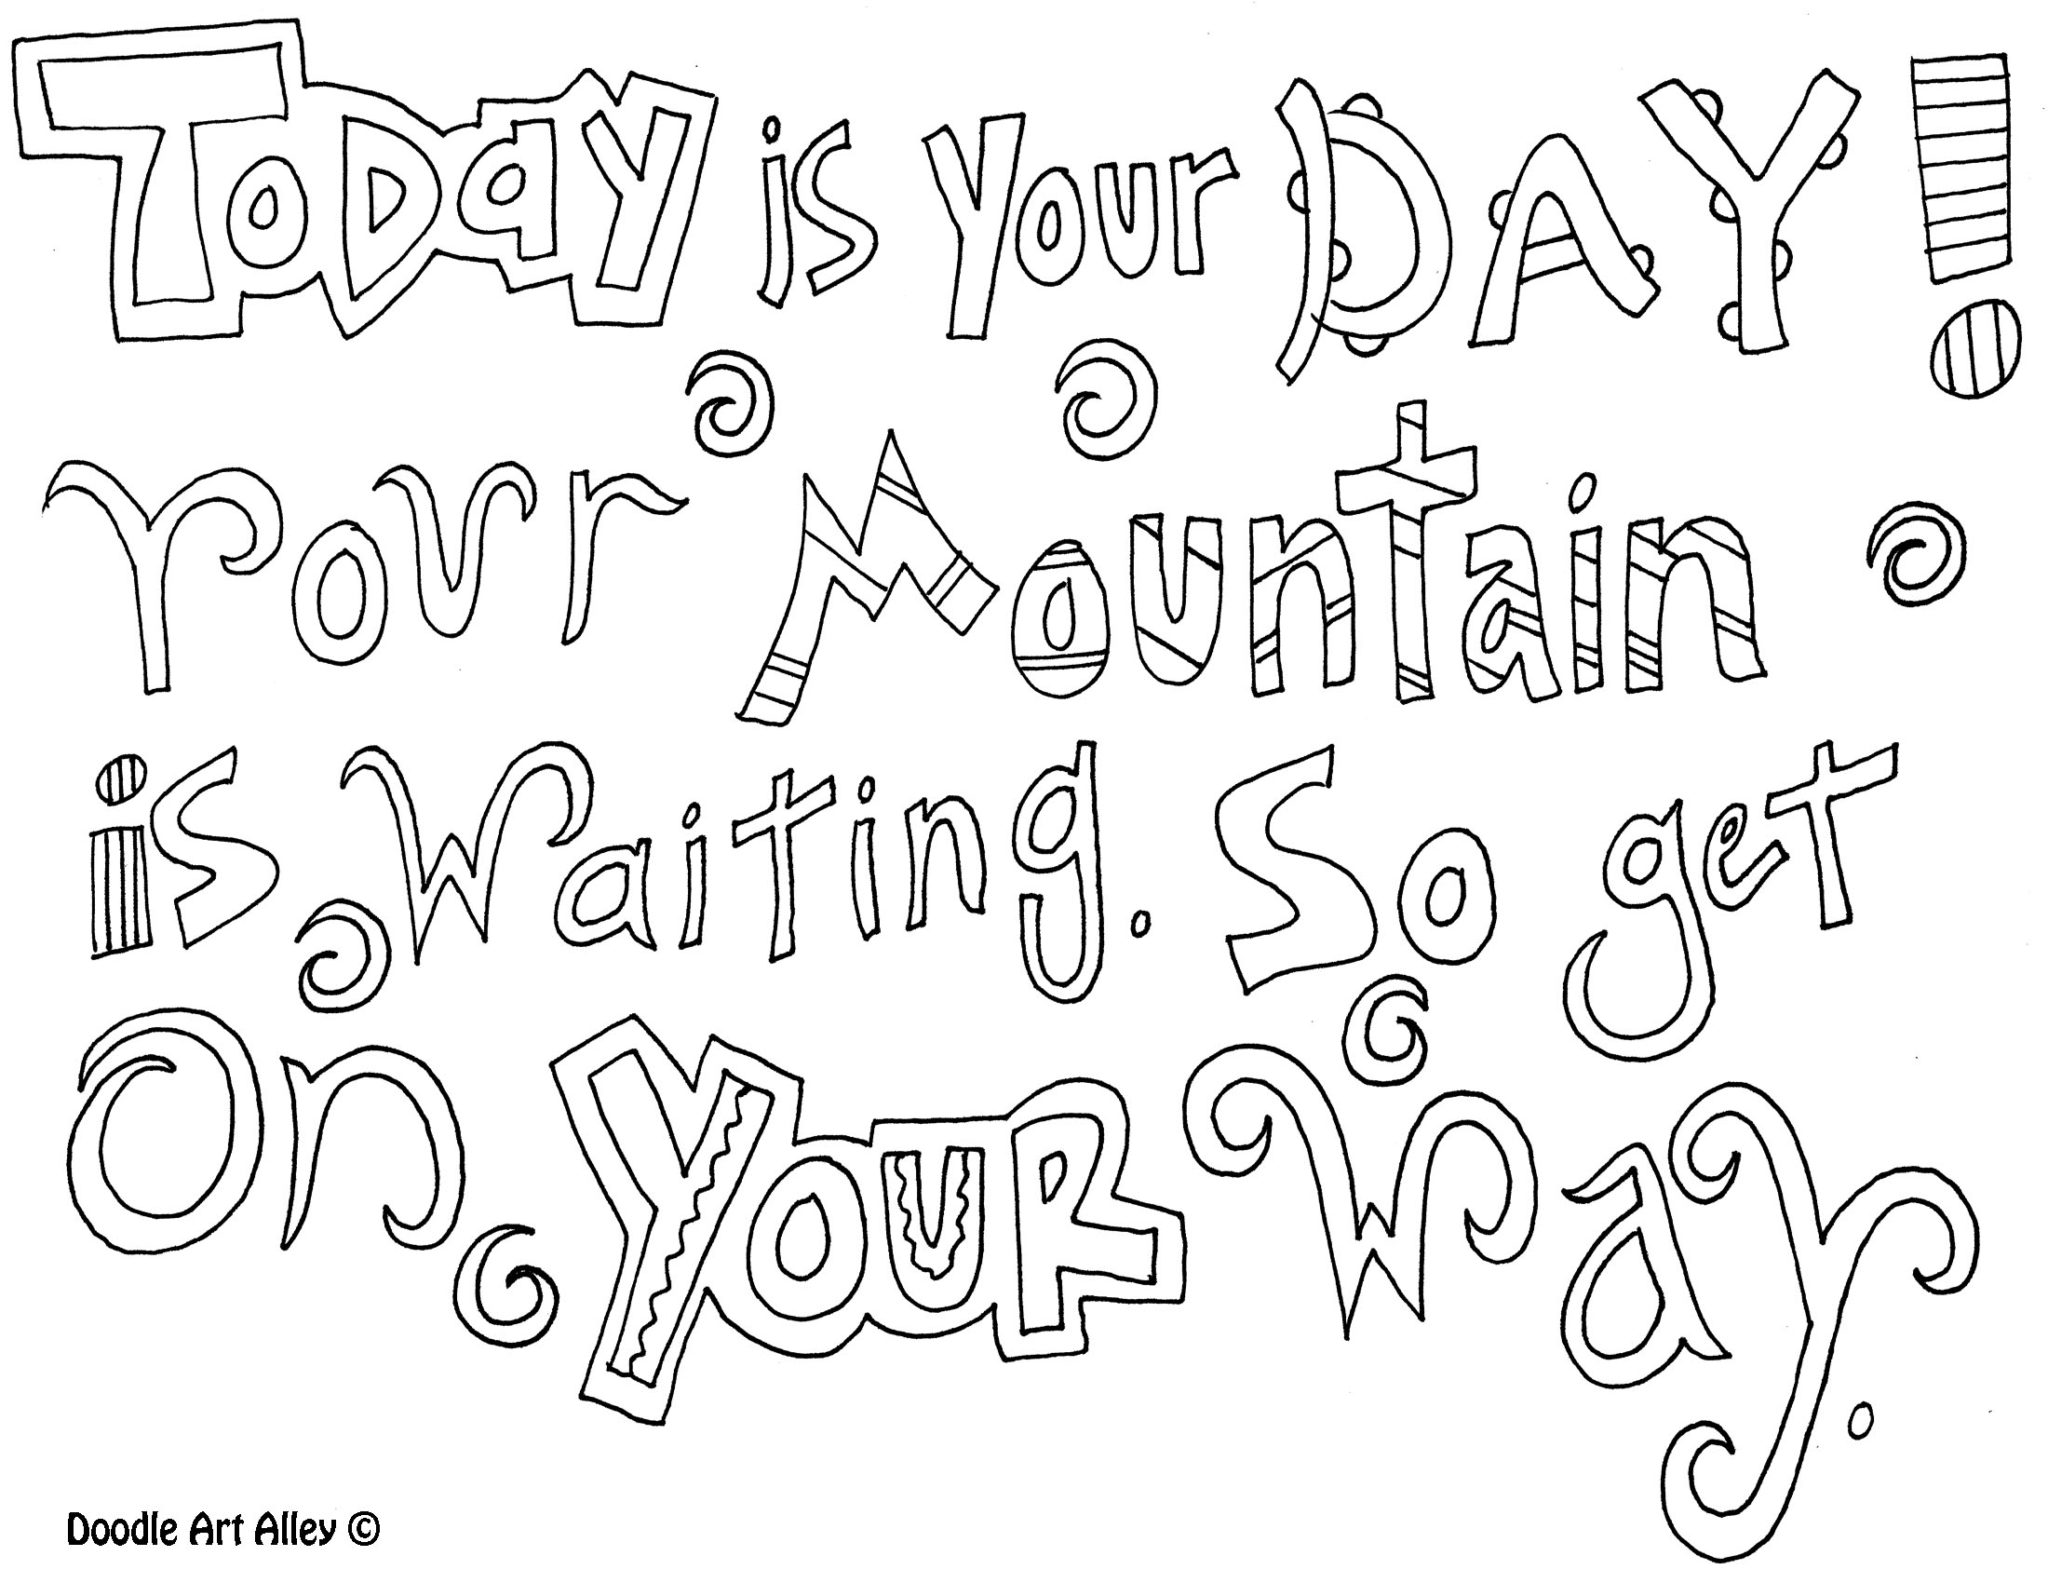 Be Inspired Wet Winter Afternoon Colouring In With The Coloring Pages With Quotes